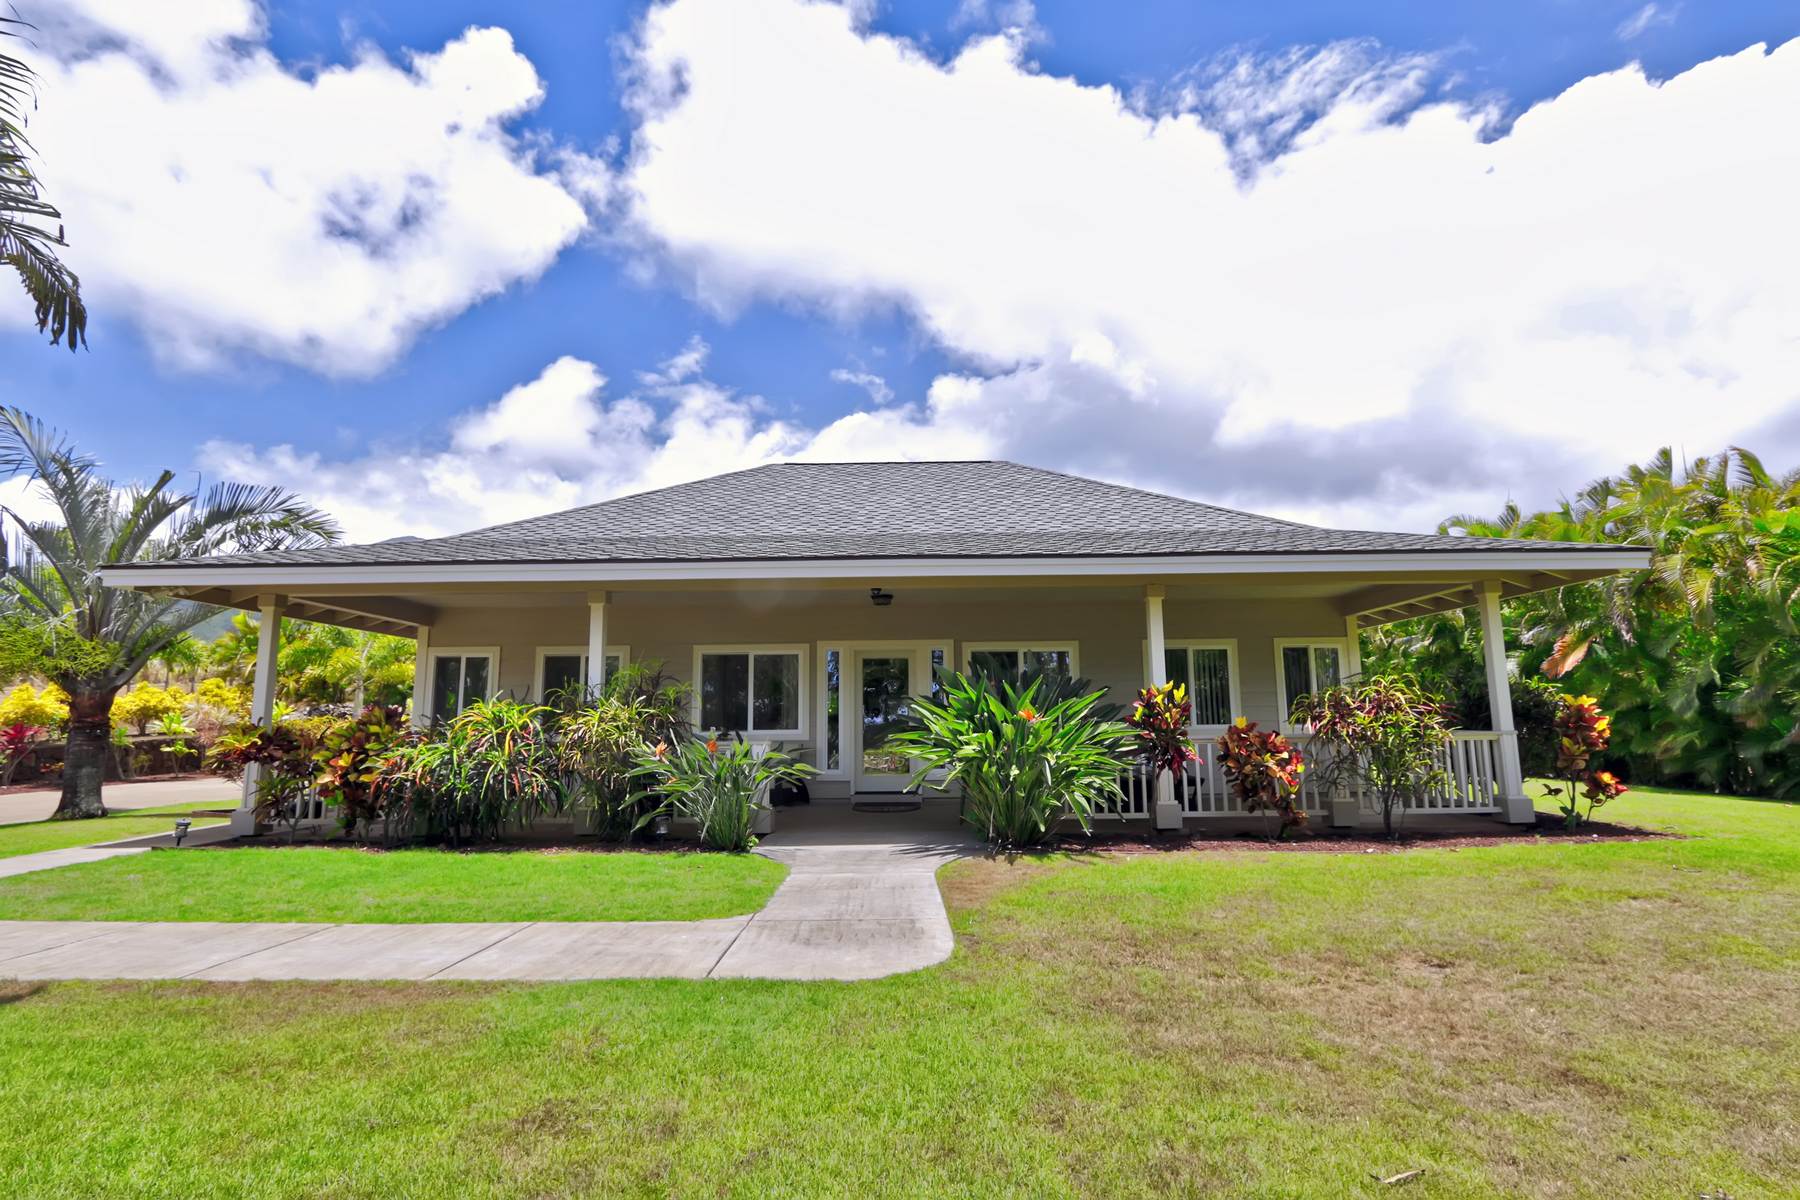 Farm / Ranch / Plantation for Active at Private Secluded Farm Estate in Central Maui 2002 Kamaile St Wailuku, Hawaii 96793 United States